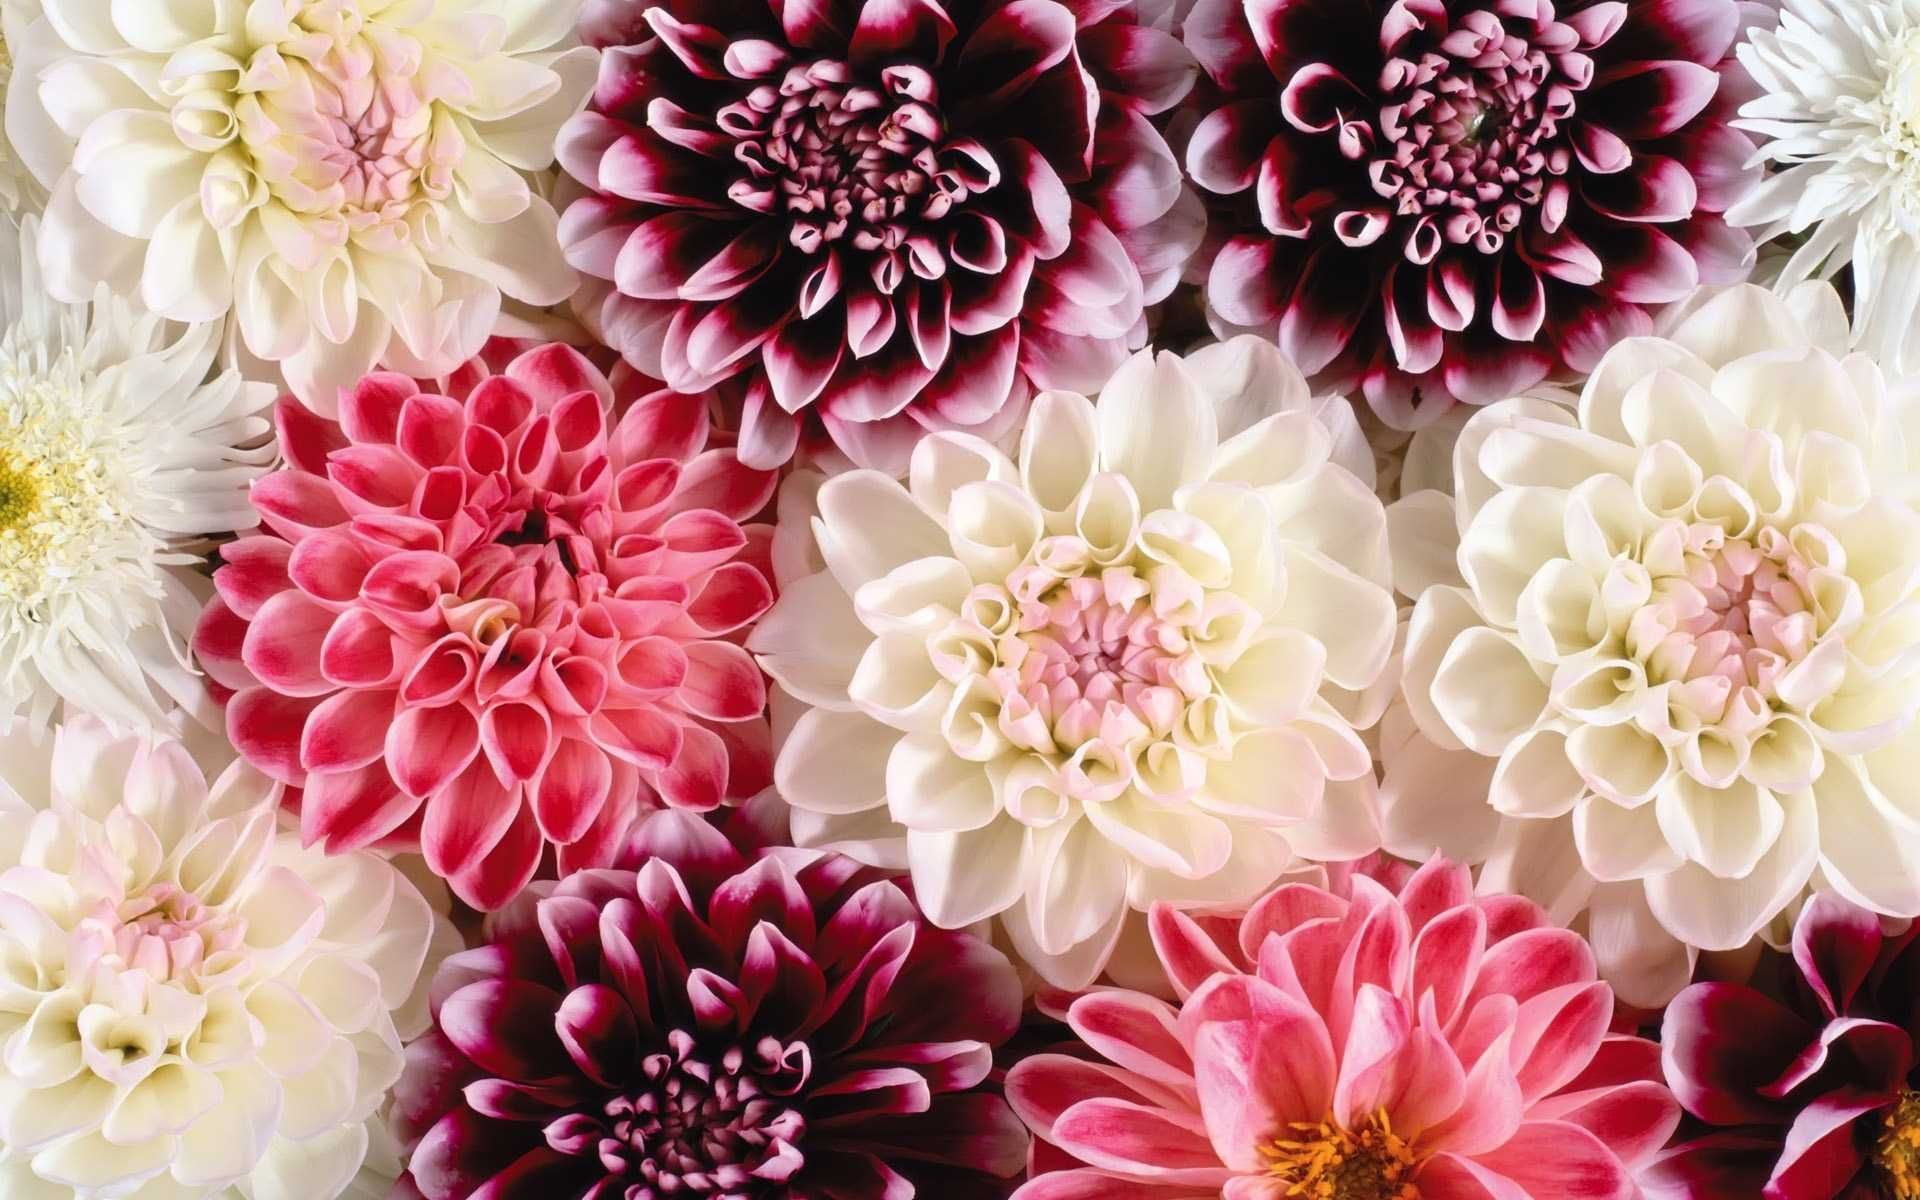 Hd Flower Wallpapers HD Hd Vintage Background Floral ...